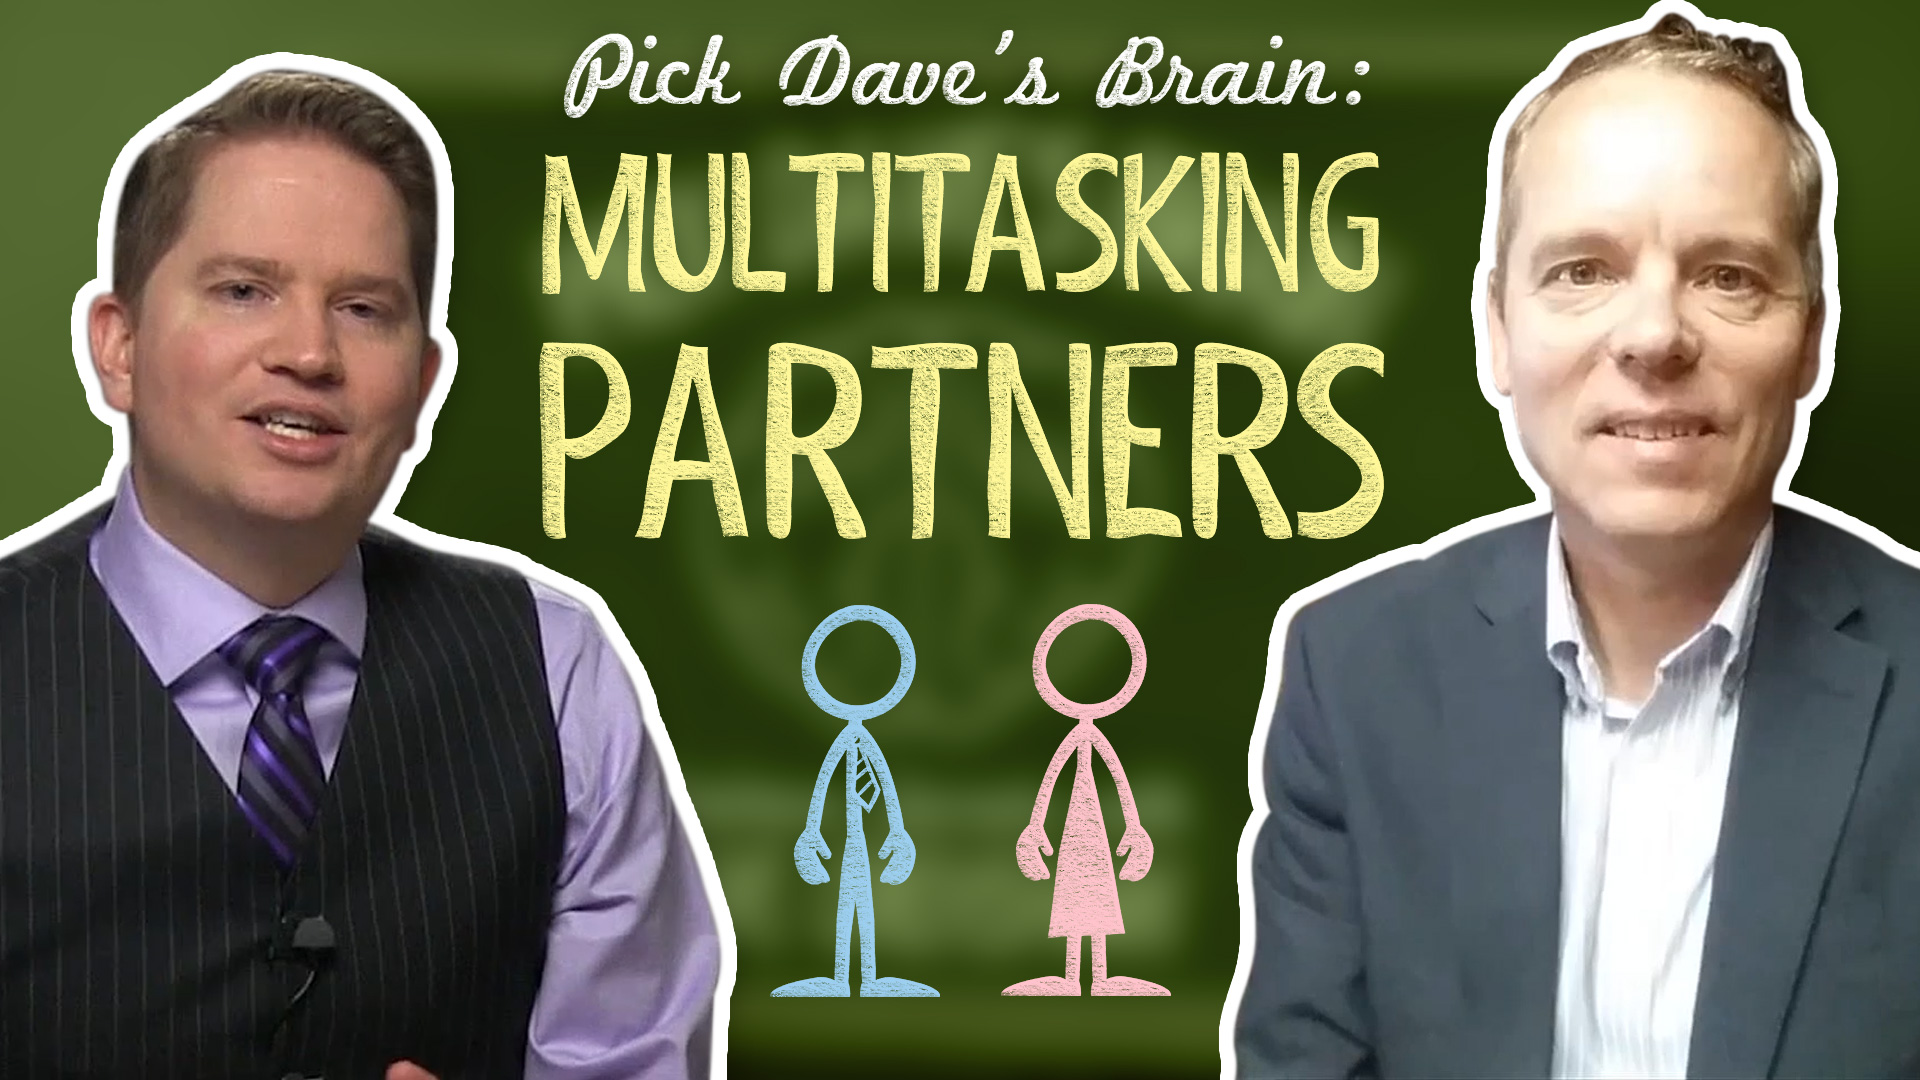 How to Avoid Multitasking in a Partnership – Pick Dave's Brain